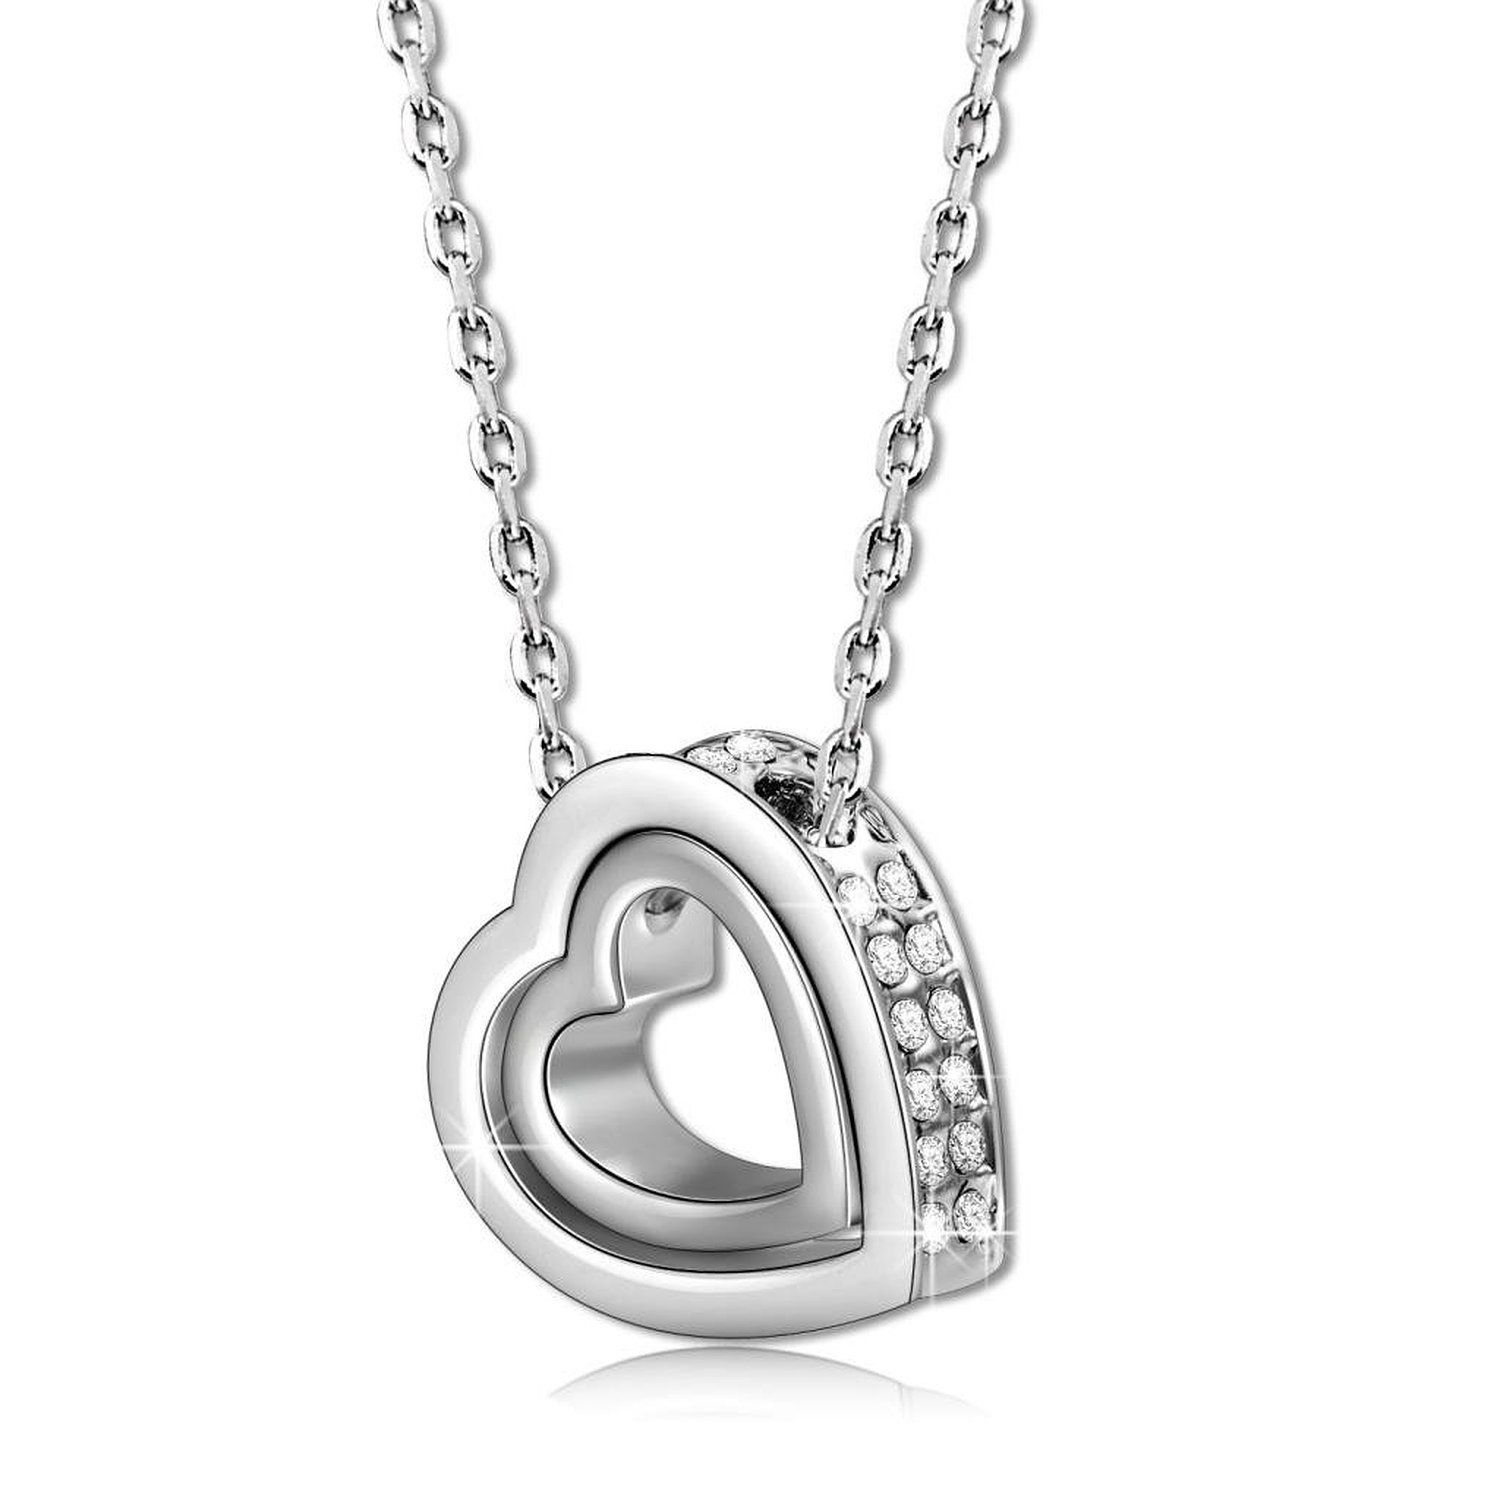 Love & Heart Crystal Women Necklace Birthday Gift for Mother Wife w/ Box